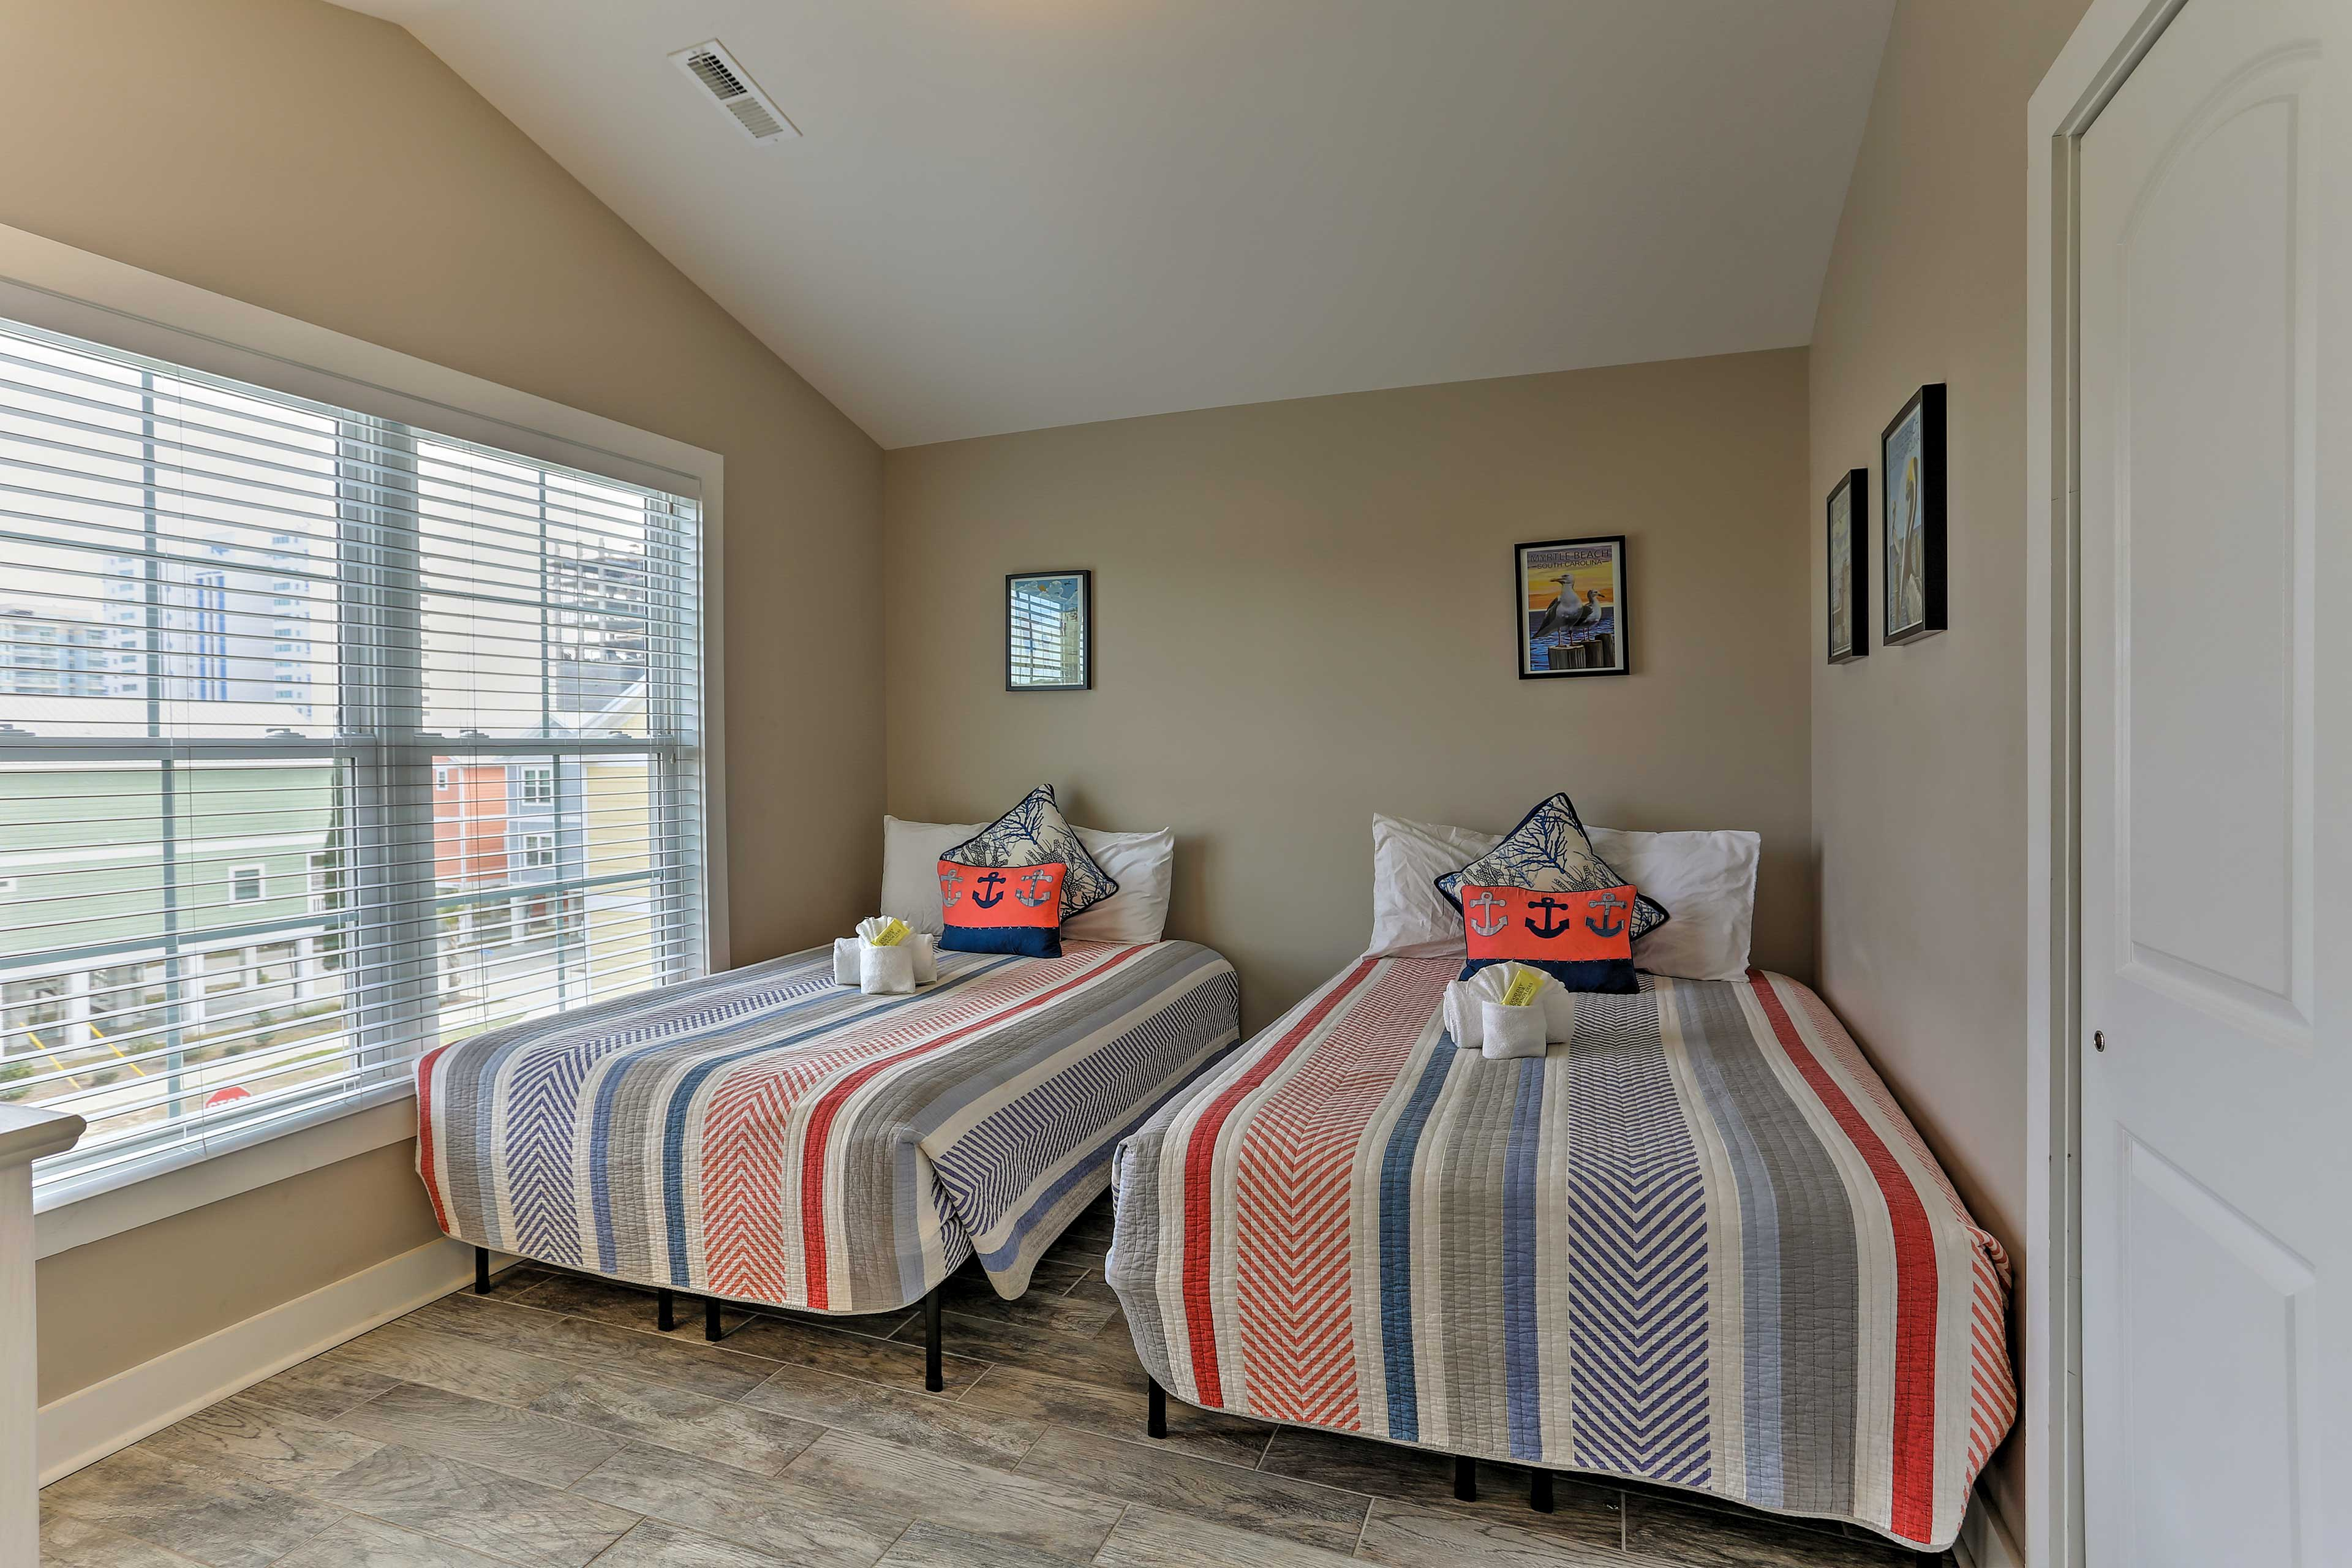 Children or siblings will rest peacefully in the 2 full beds.